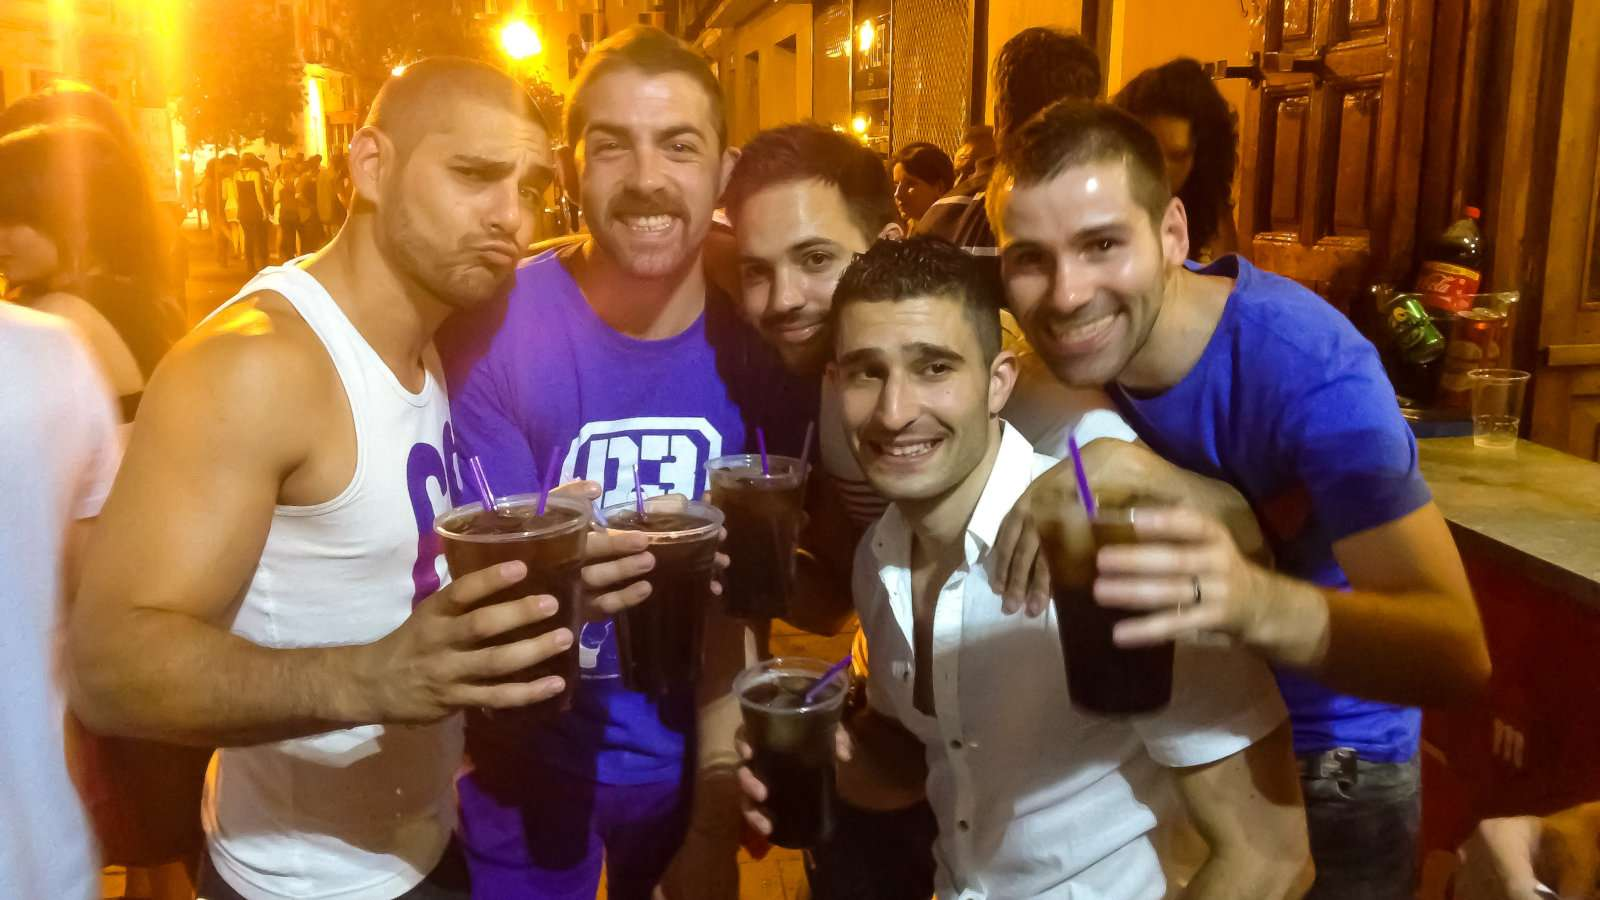 Madrid one of the most gay friendly cities in the world